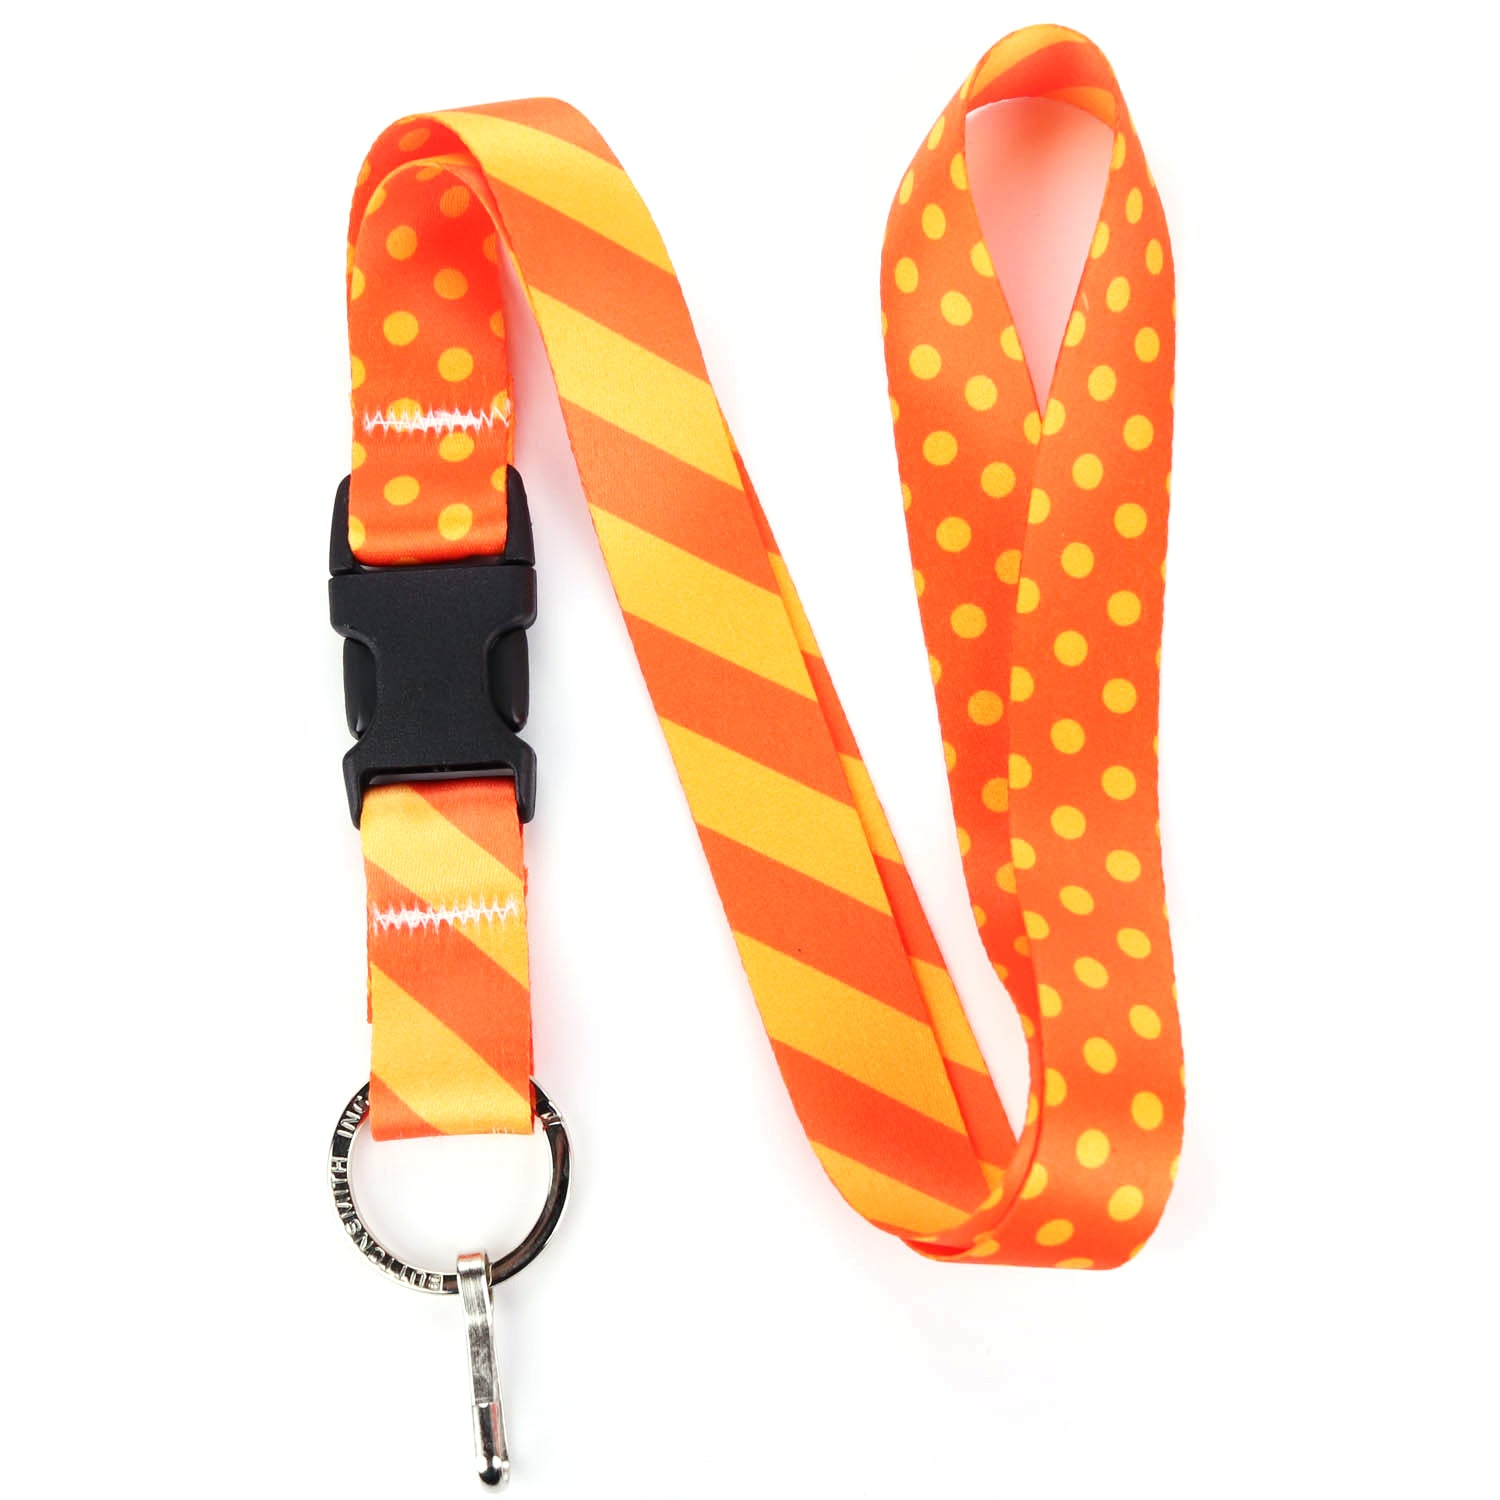 Buttonsmith Orange Dots Lanyard - Made in USA